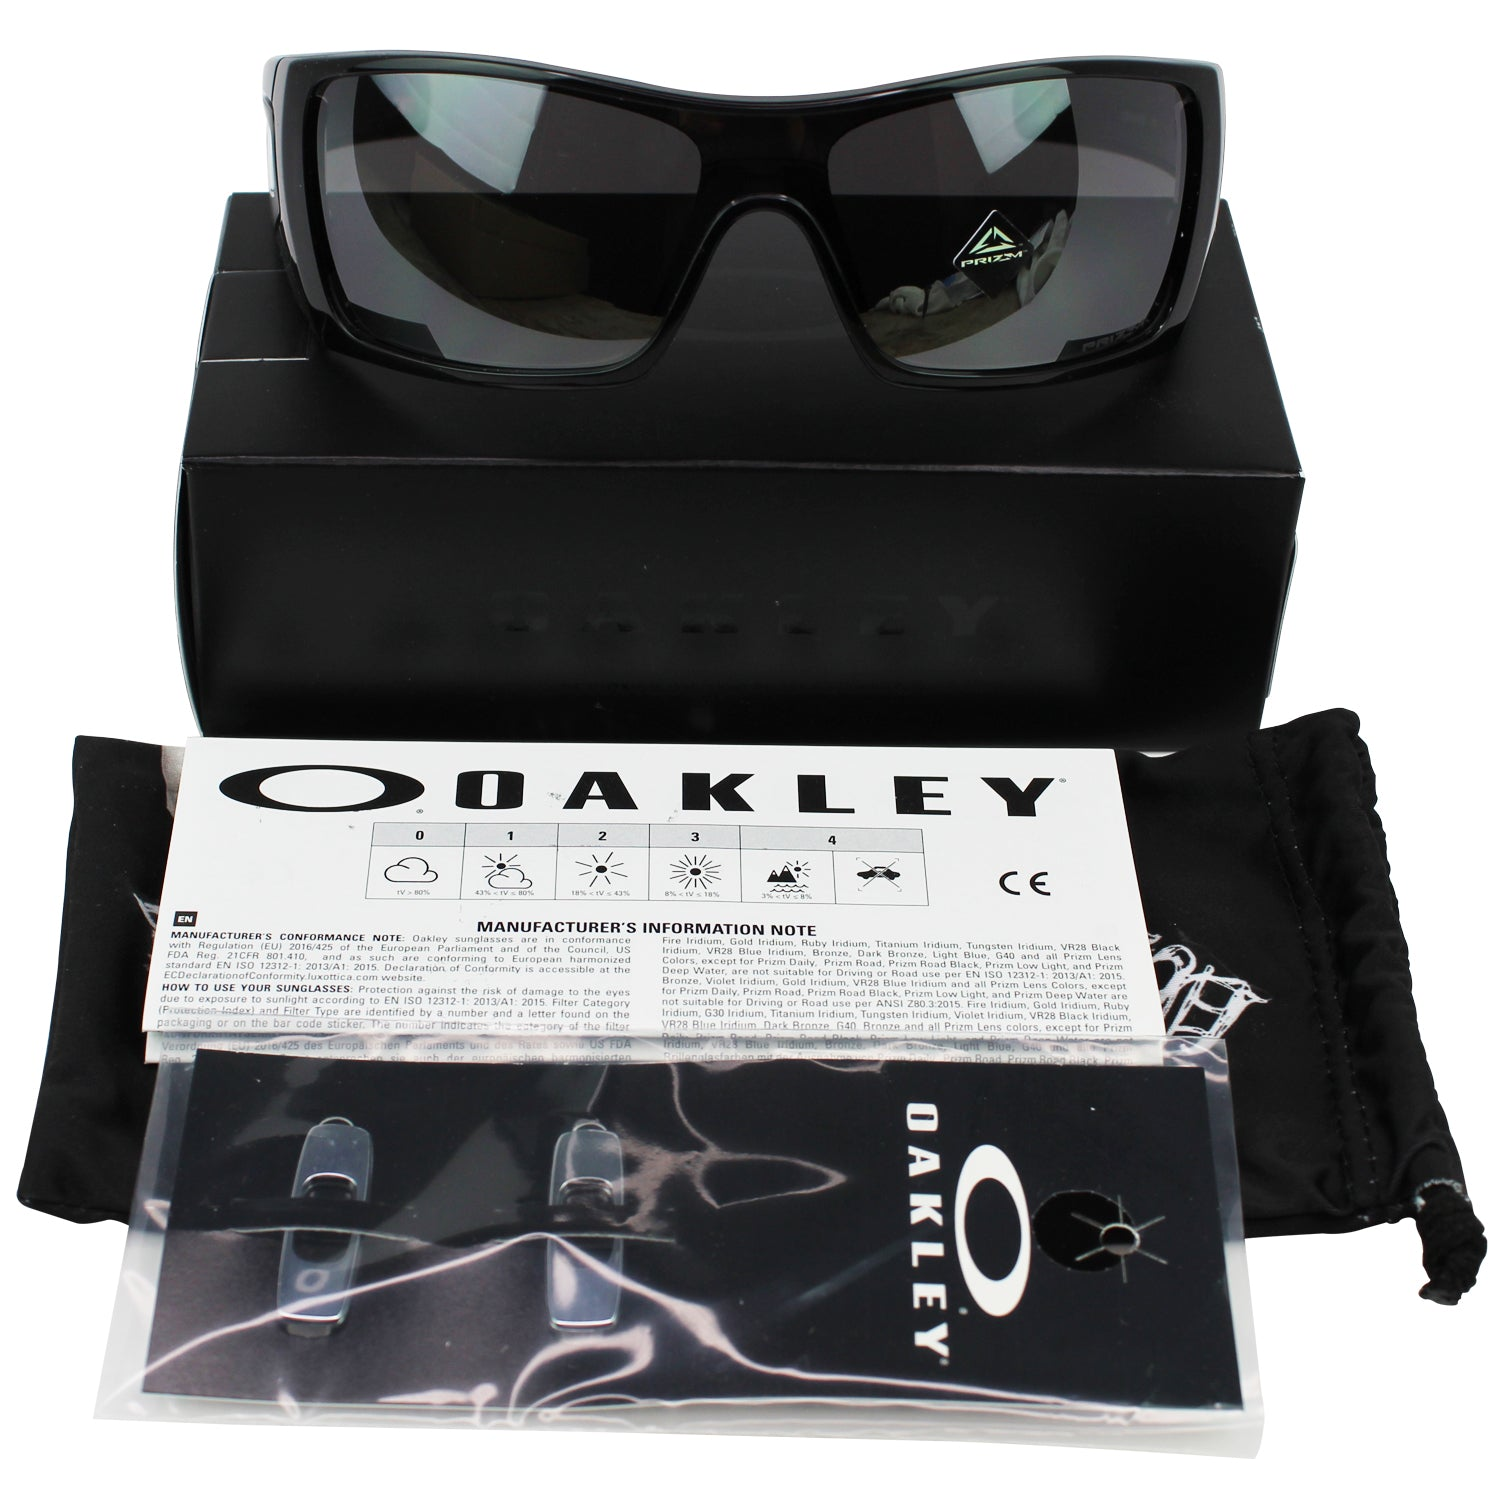 New Authentic Oakley OO9101-5727 Batwolf Sunglasses Prizm Black Lens